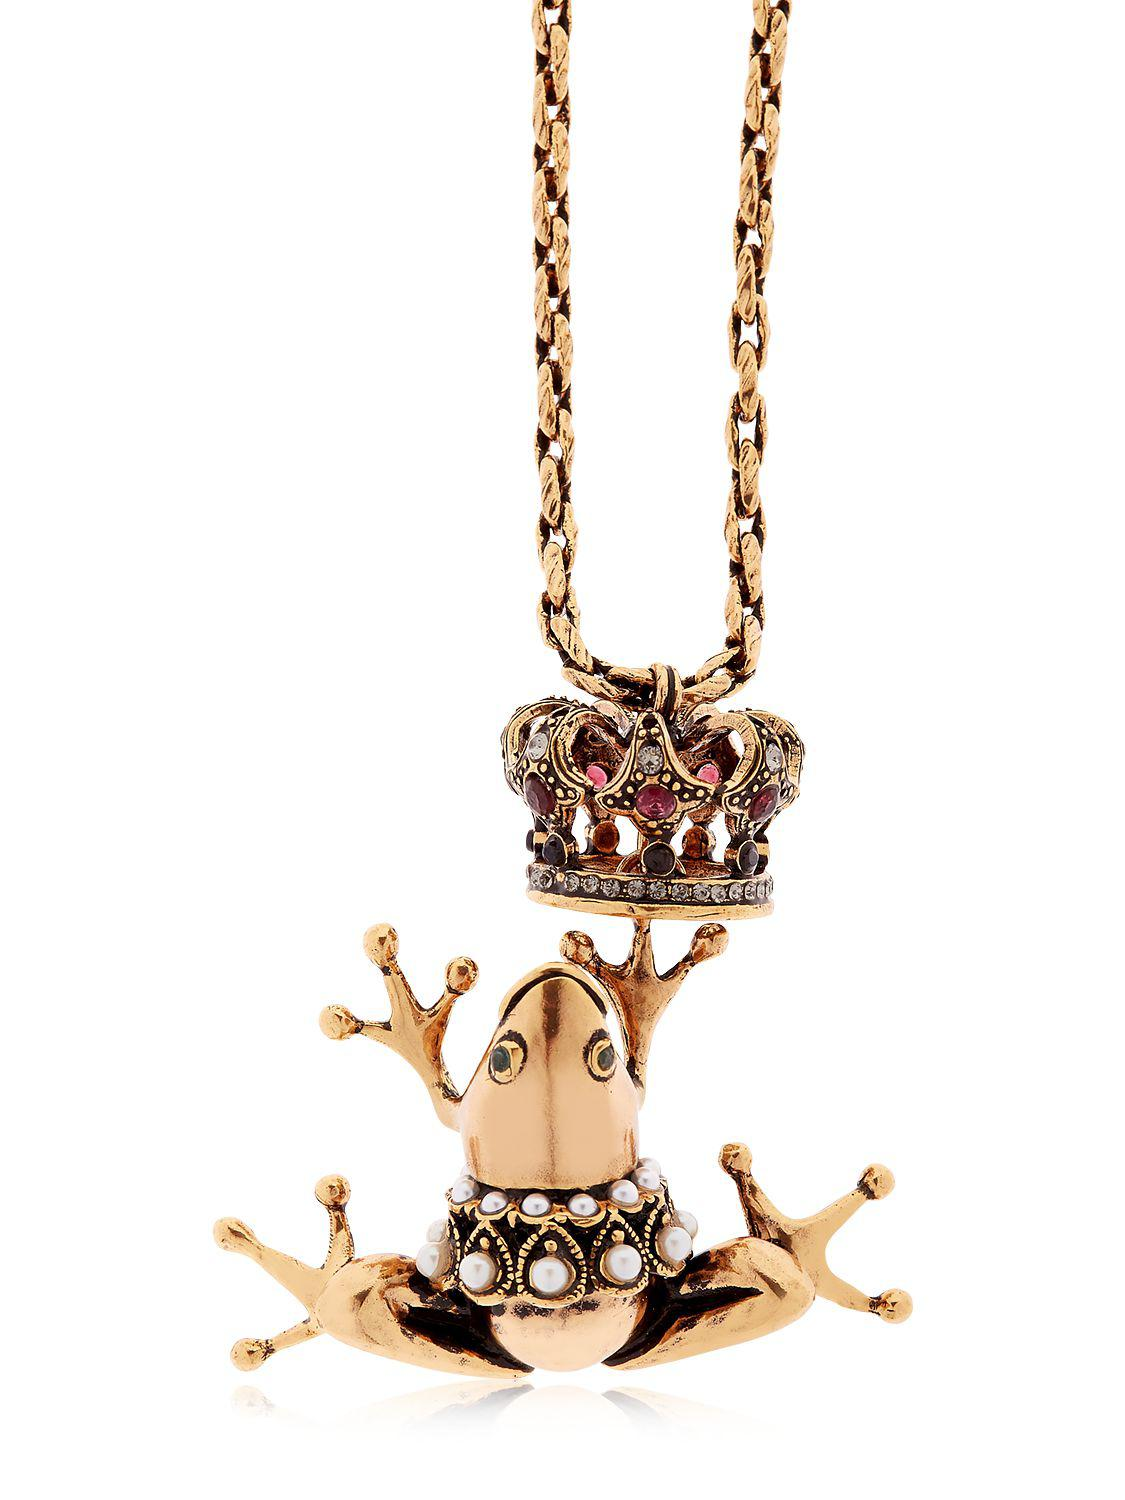 Alcozer & J Frog Prince Necklace in Gold (Metallic)